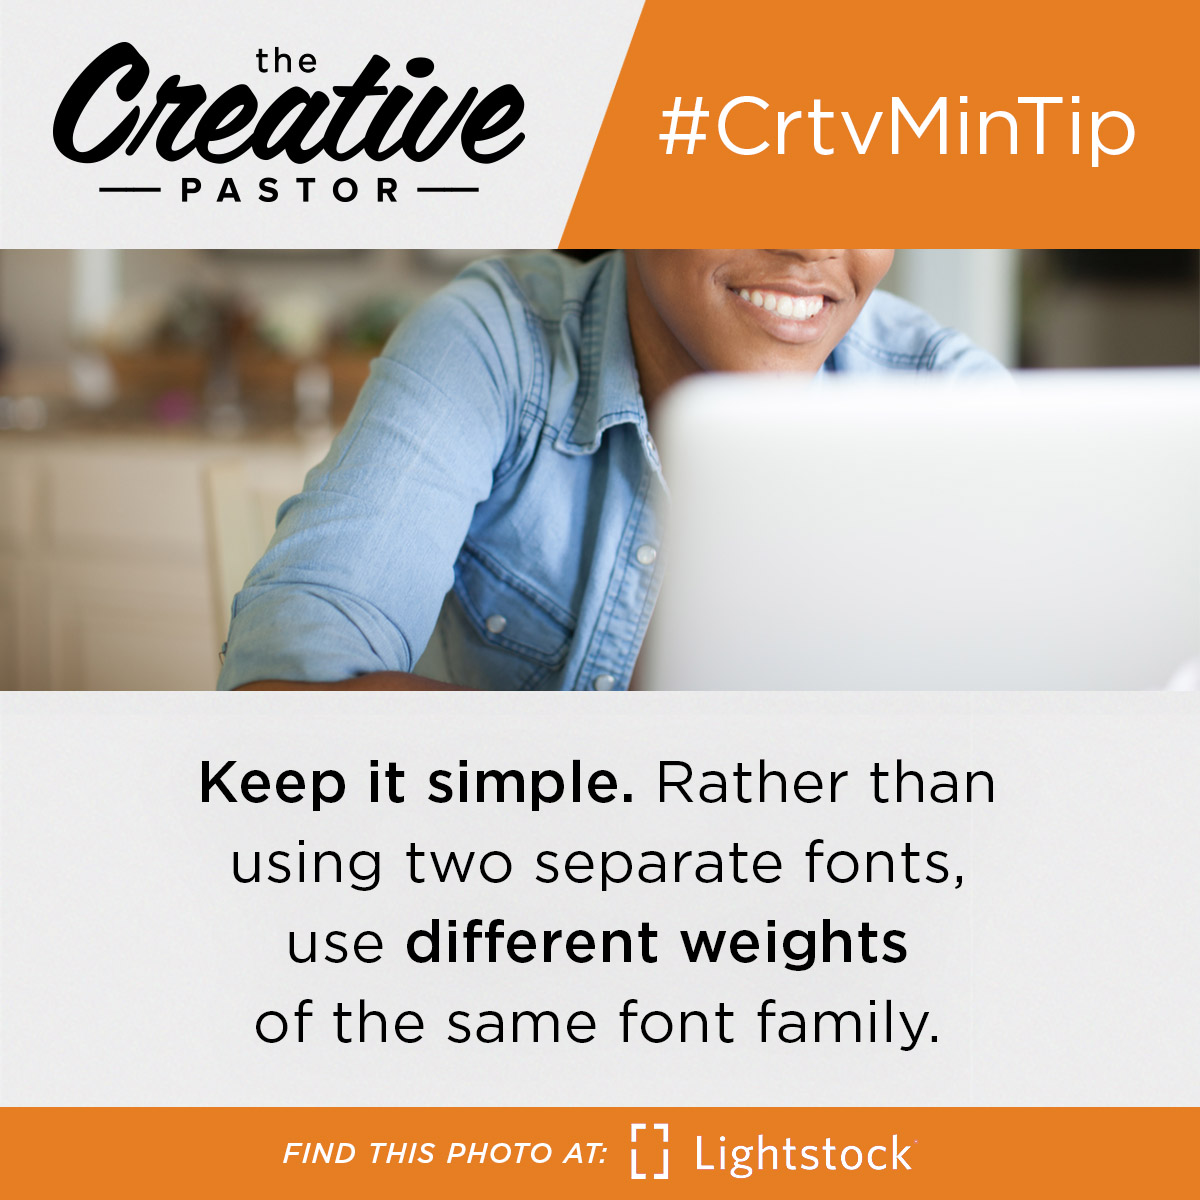 #CrtvMinTip: Keep it simple. Rather than using two separate fonts, use different weights of the same font family.